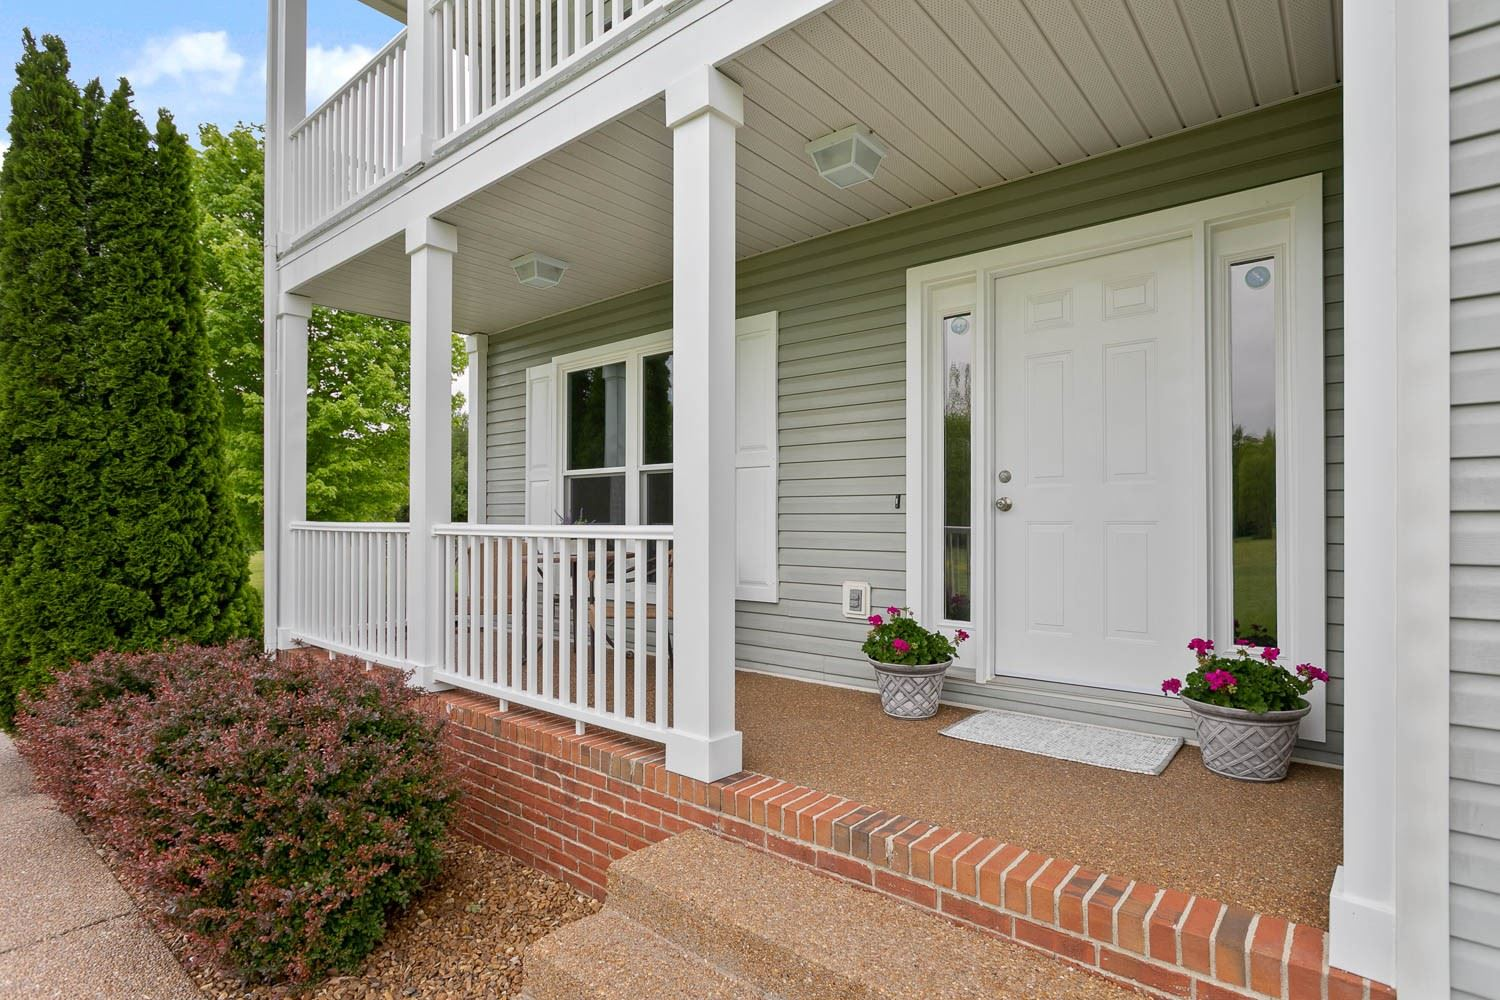 Photo of 4191 Columbia Pike, Franklin, TN 37064 (MLS # 2253075)